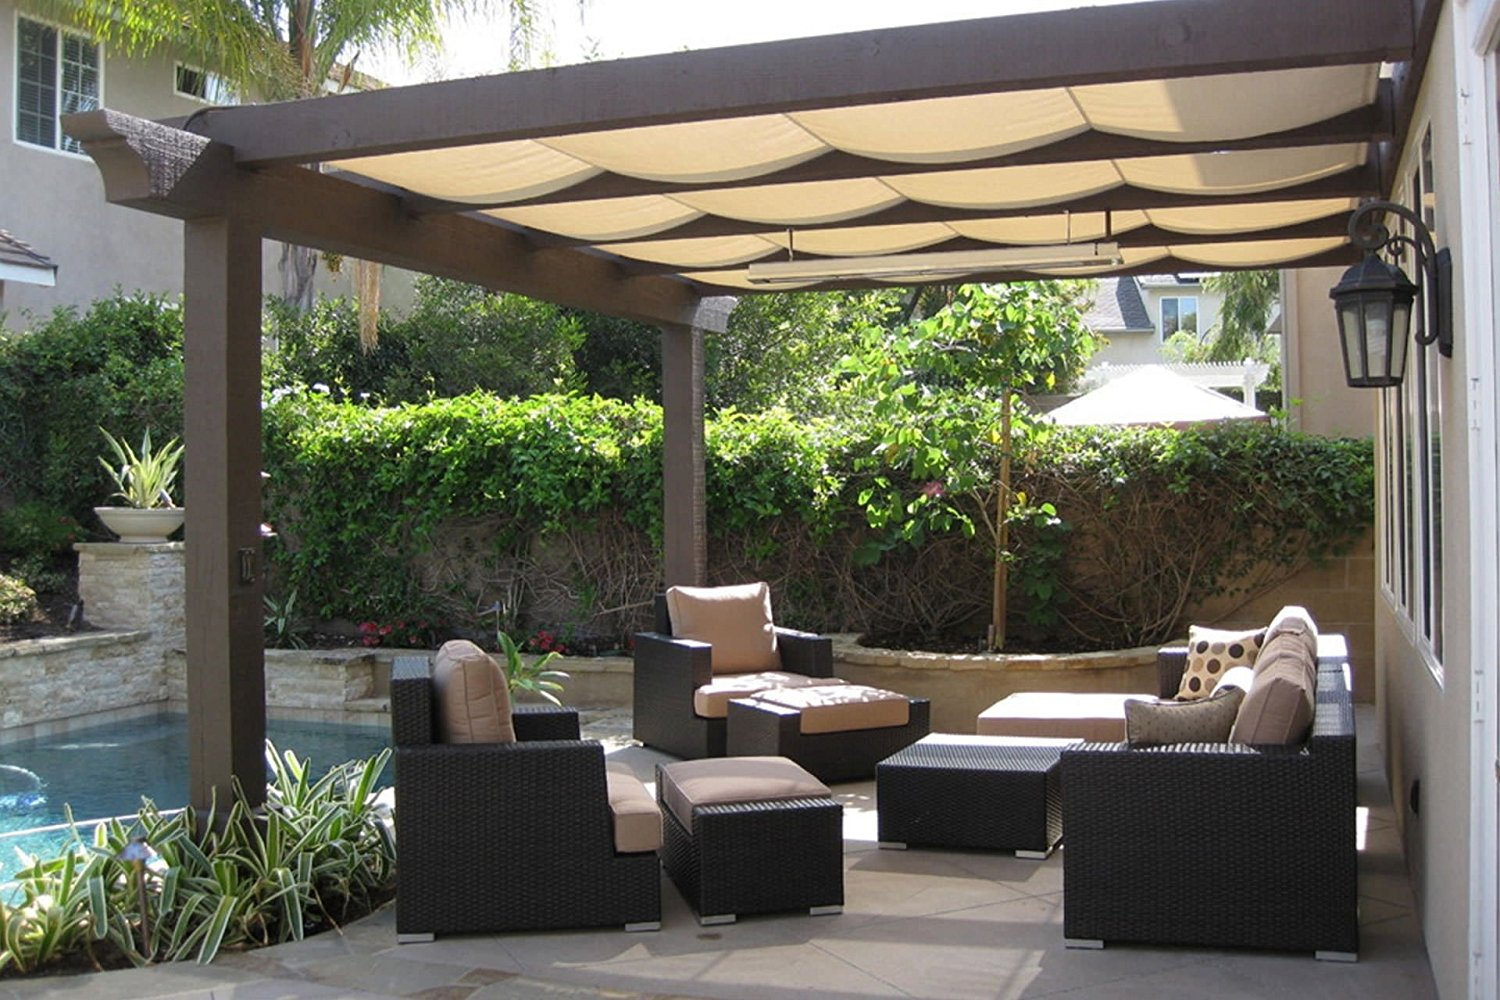 Cheap Pergola Fabric Shade Find Pergola Fabric Shade Deals On Line